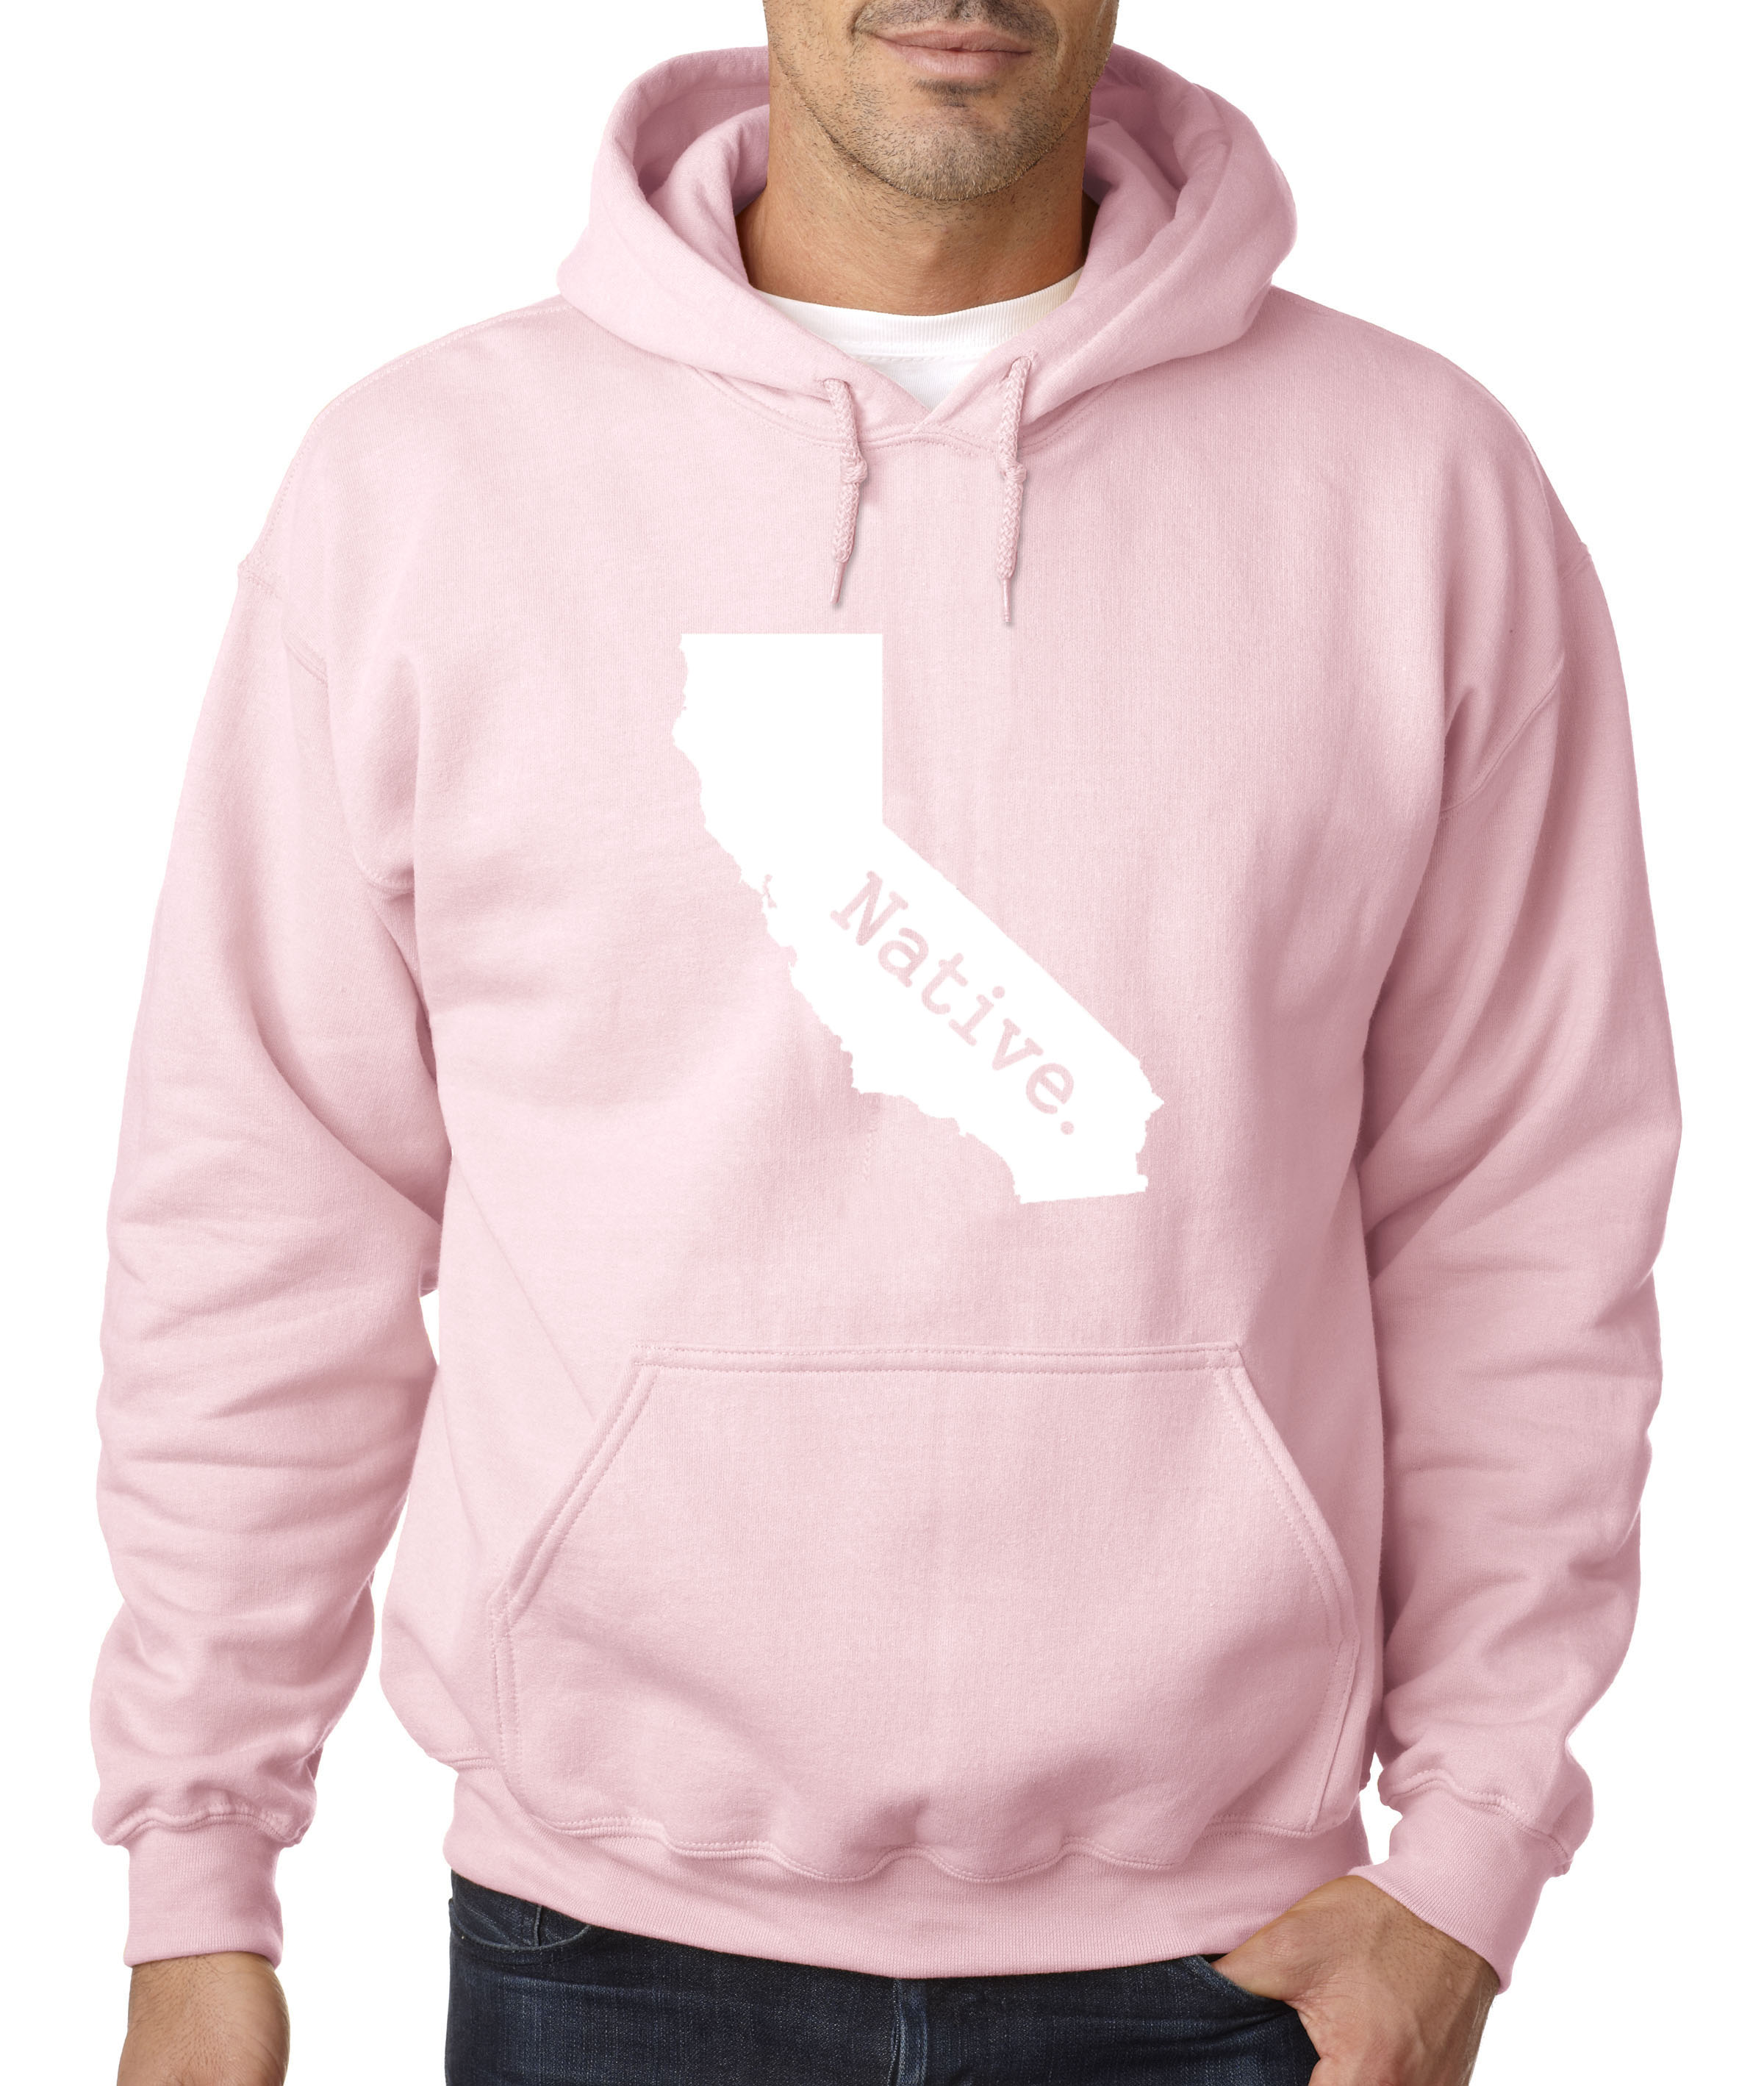 New Way 674 Hoodie California Native Exclusive State Collection USA